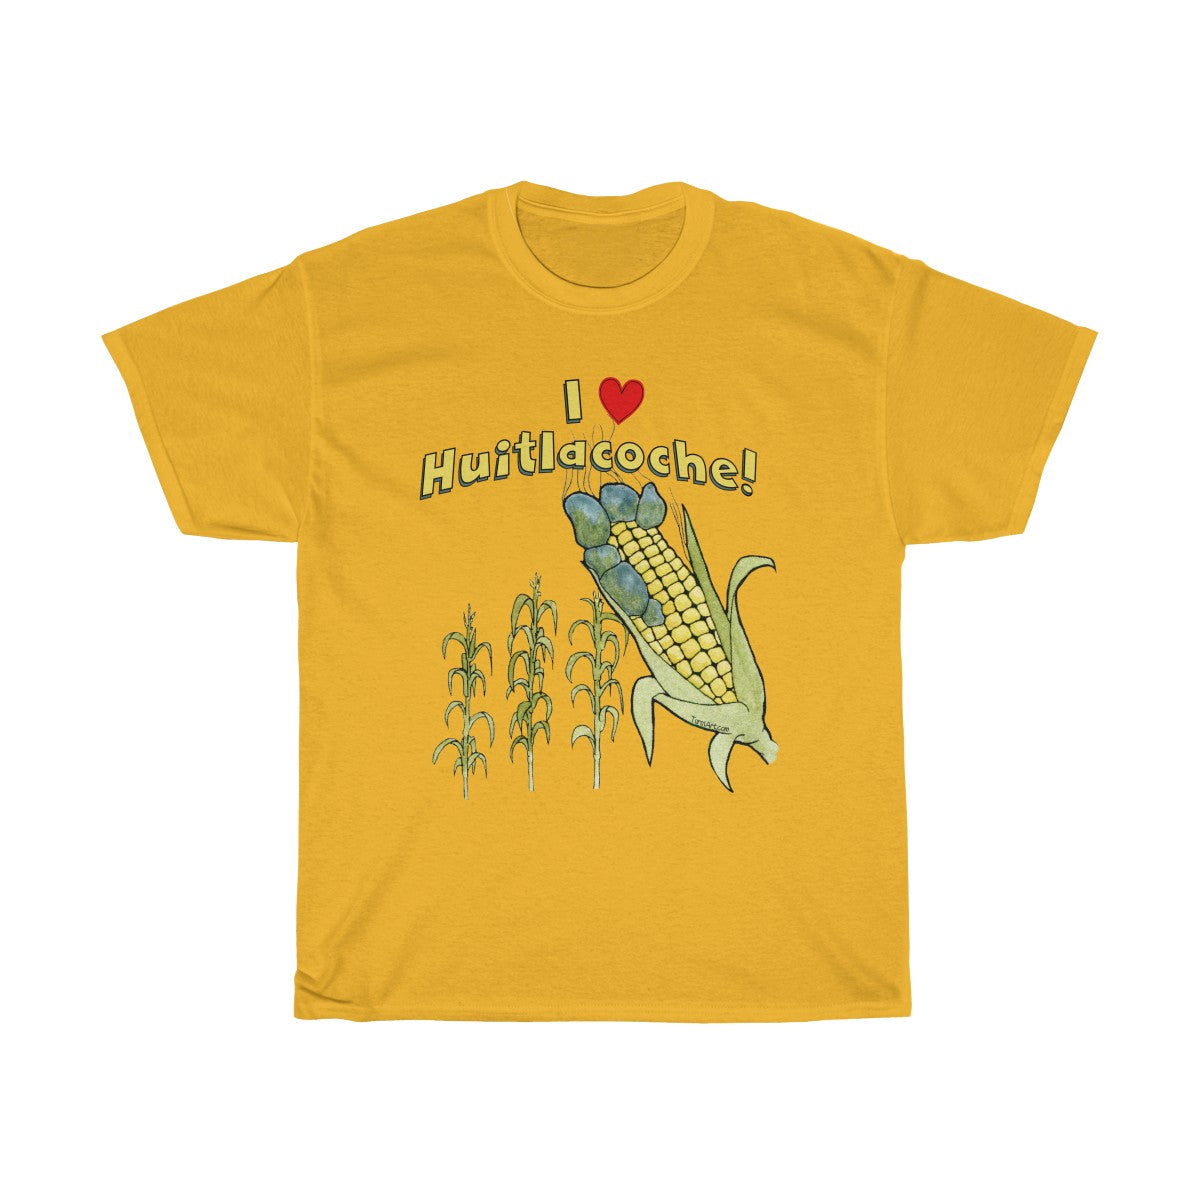 I love Huitlacoche T-Shirt Golden Yellow Unisex Heavy Cotton Tee